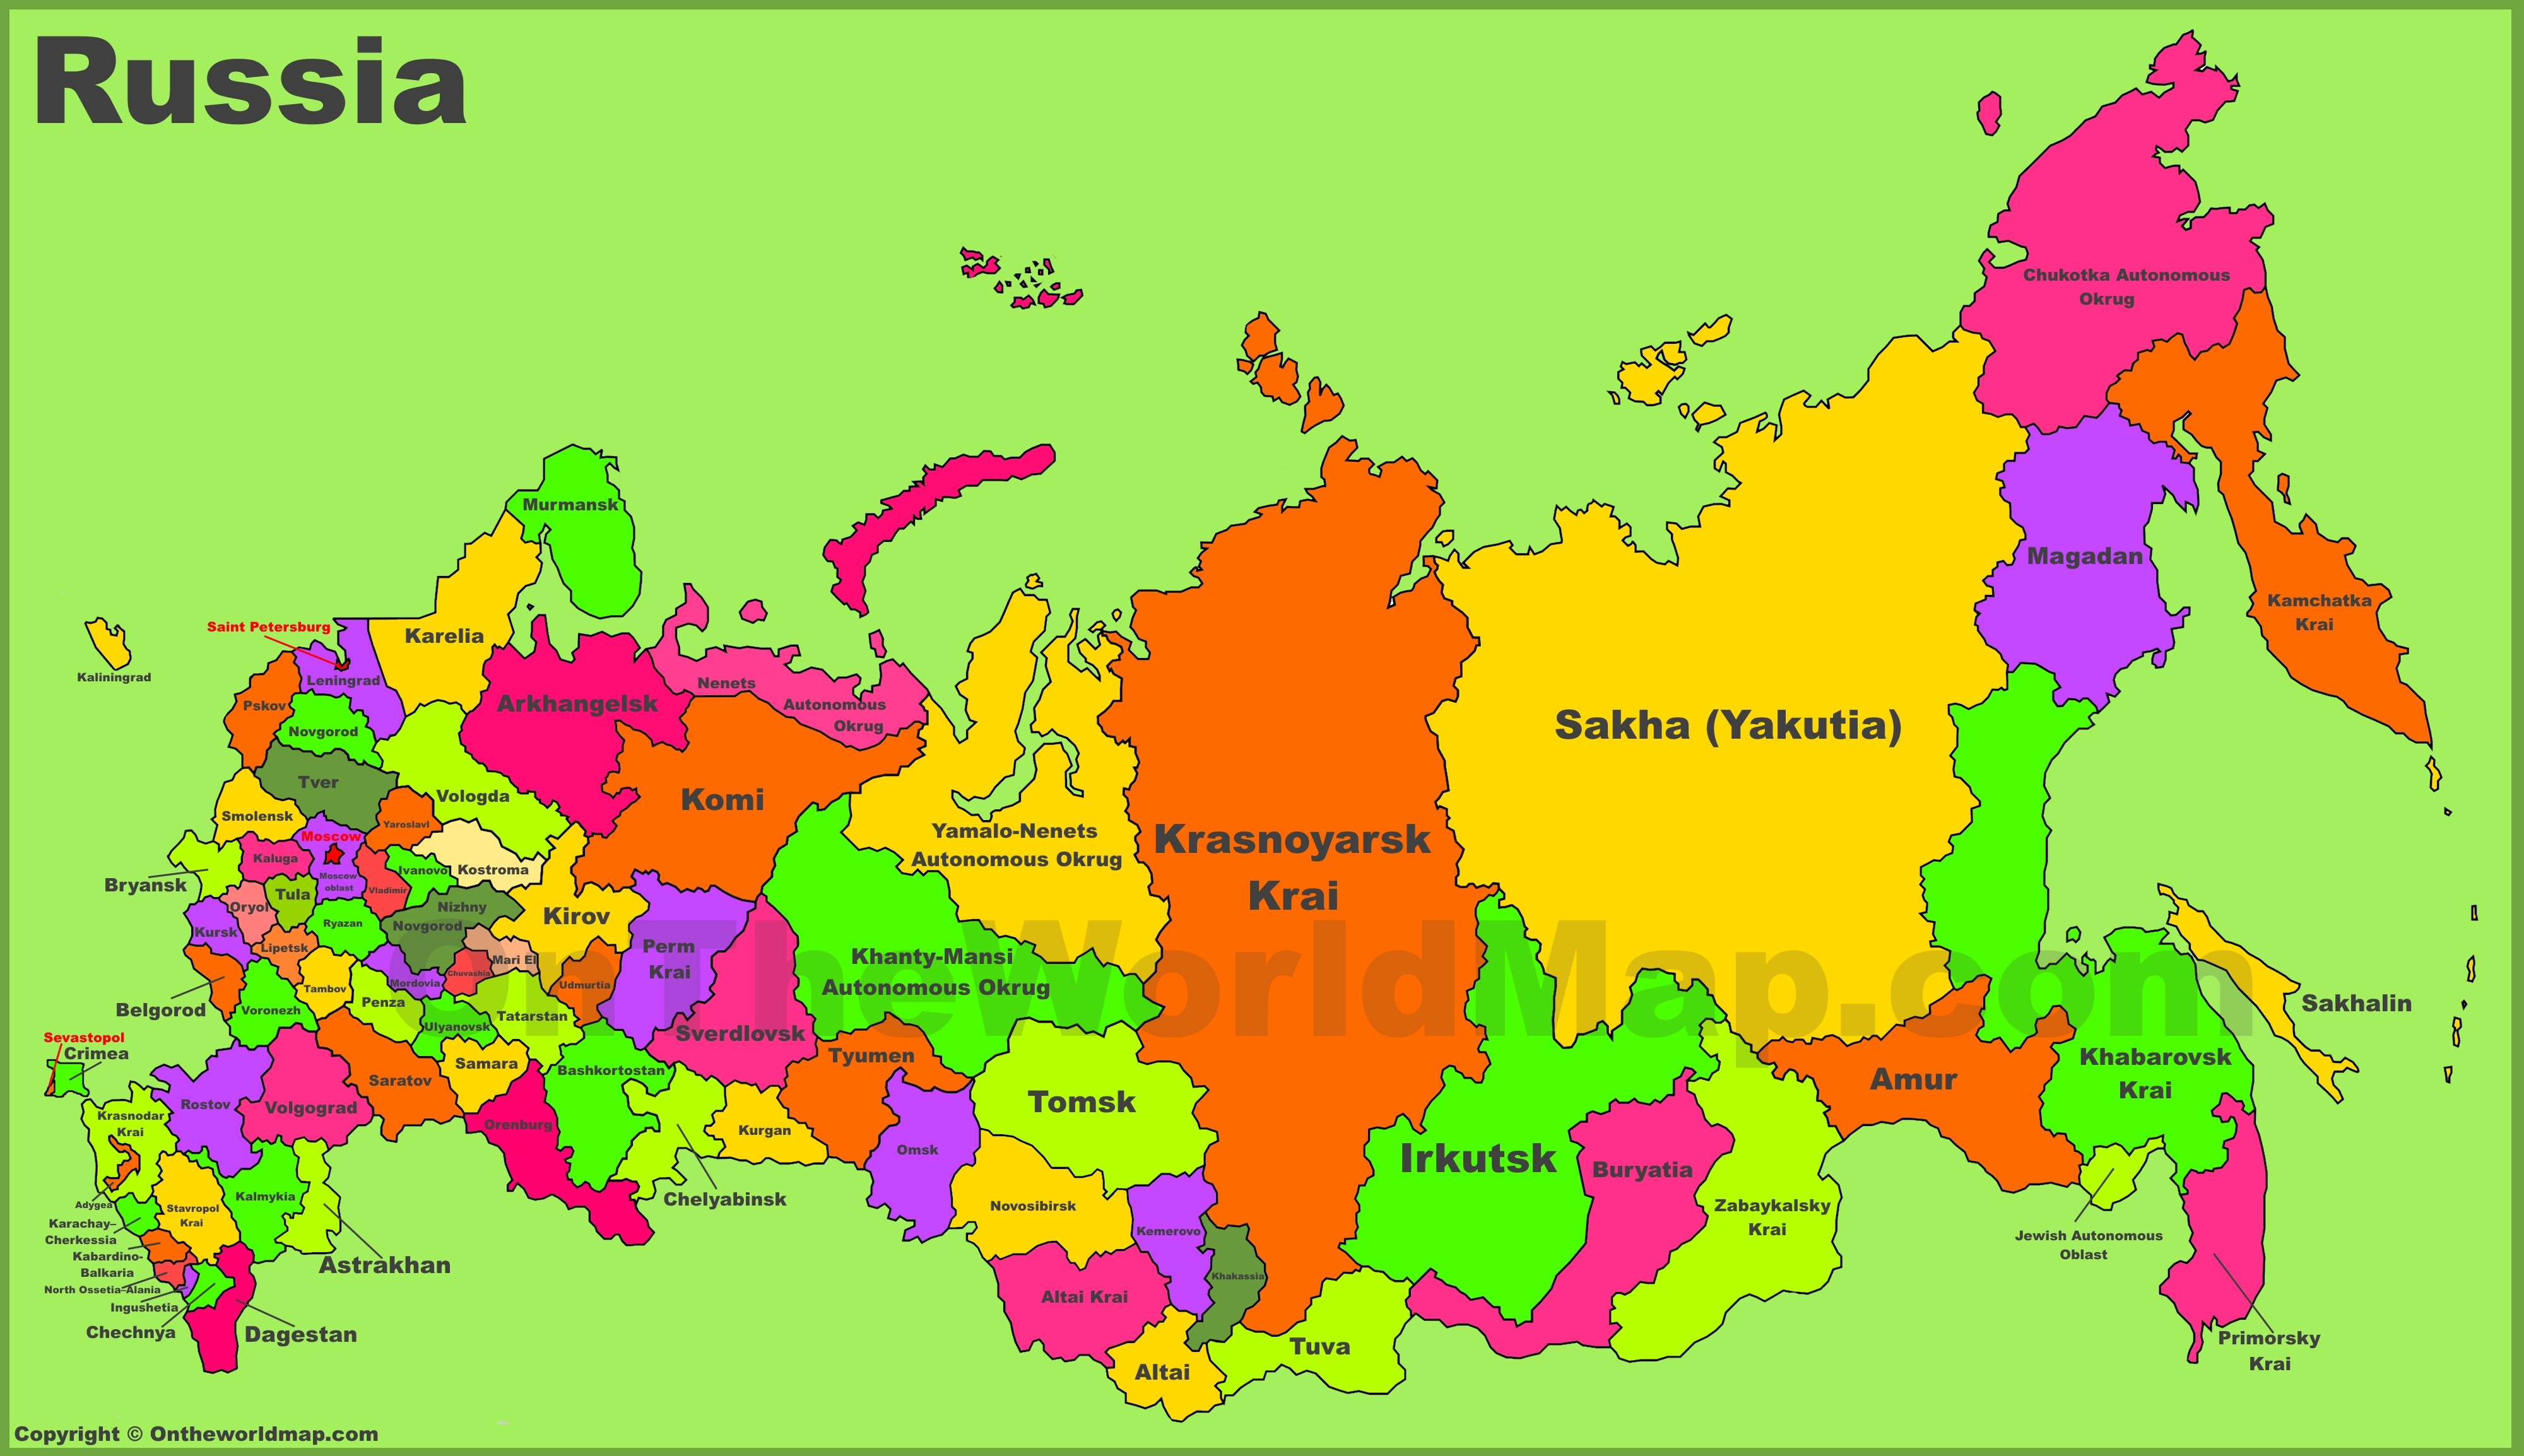 Russia Maps | Maps Of Russia (Russian Federation) - Free Printable Map Of Russia